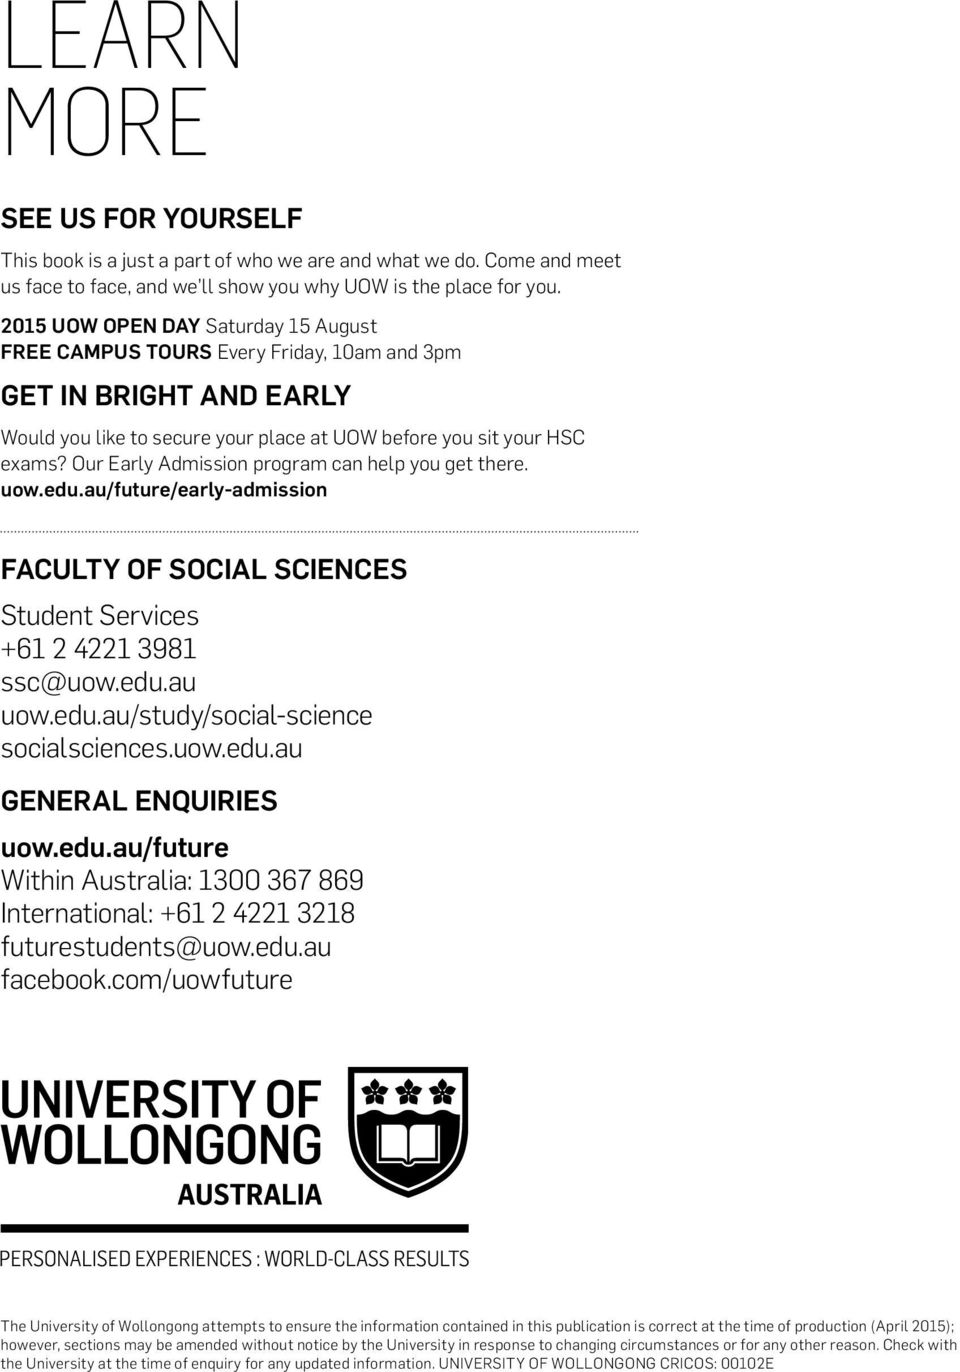 Our Early Admission program can help you get there. uow.edu.au/future/early-admission FACULTY OF S Student Services +61 2 4221 3981 ssc@uow.edu.au uow.edu.au/study/social-science socialsciences.uow.edu.au GENERAL ENQUIRIES uow.